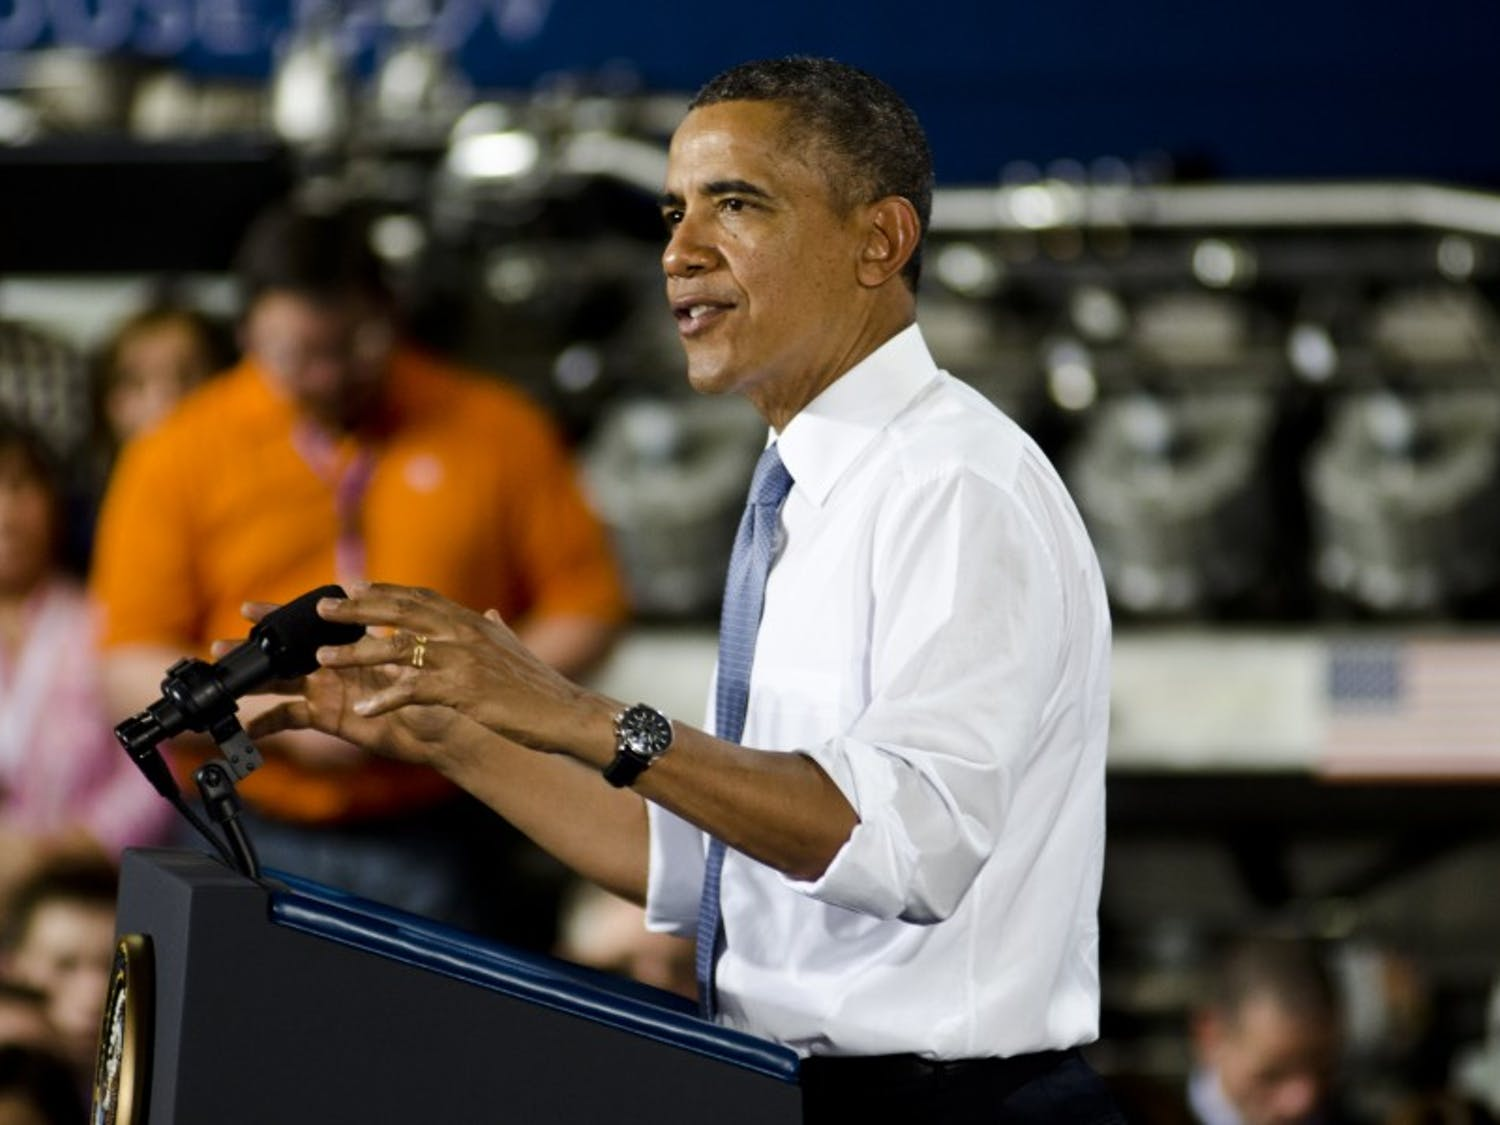 Former President Barack Obama rallied in Milwaukee Friday to support Democratic candidate for governor Tony Evers and U.S. Sen. Tammy Baldwin in the impending midterm election.